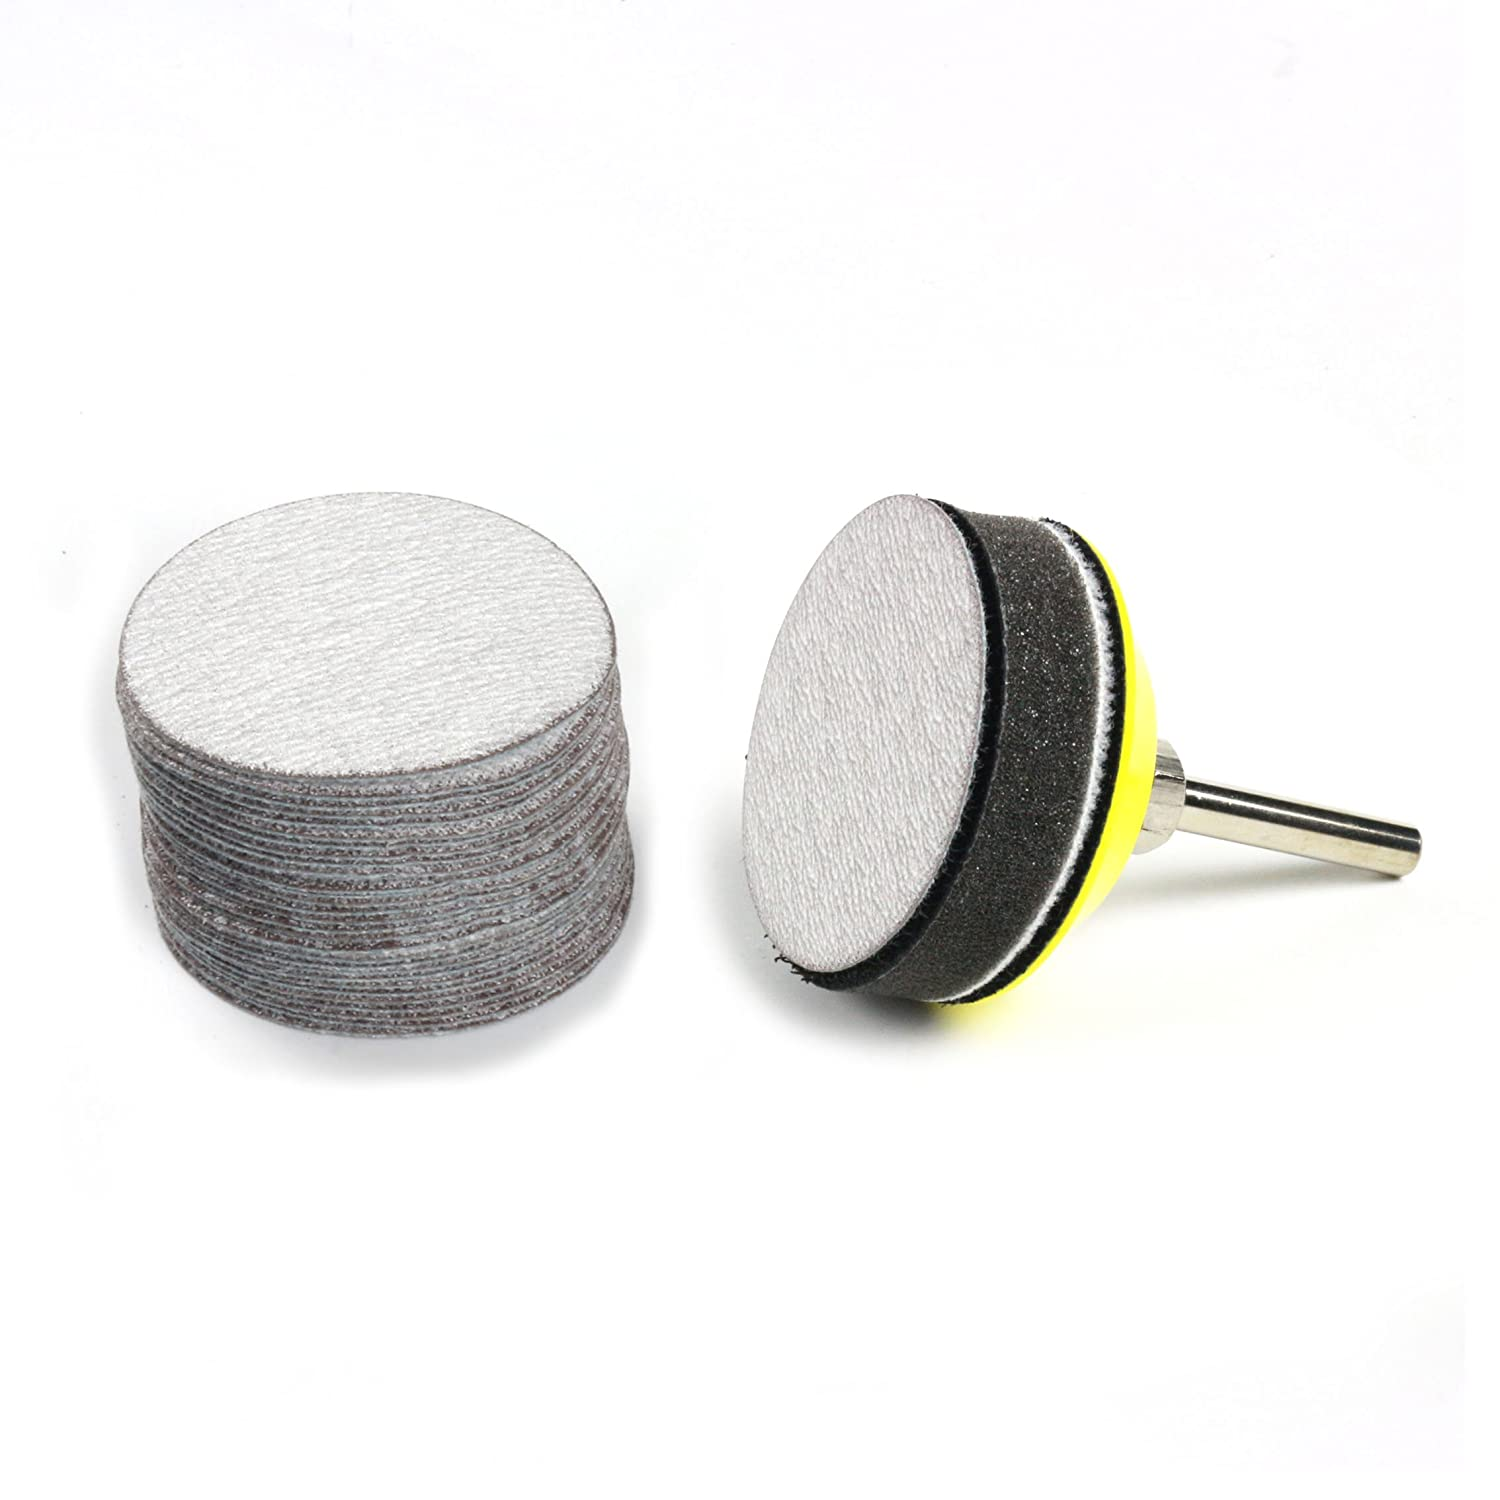 30-Pack Soft Sponge Buffering Pad for DIY Woodworking 2-Inch 5000 Grit Aluminum Oxide Wet//Dry Hook and Loop Sanding Discs with a 6mm Shank Backing Pad